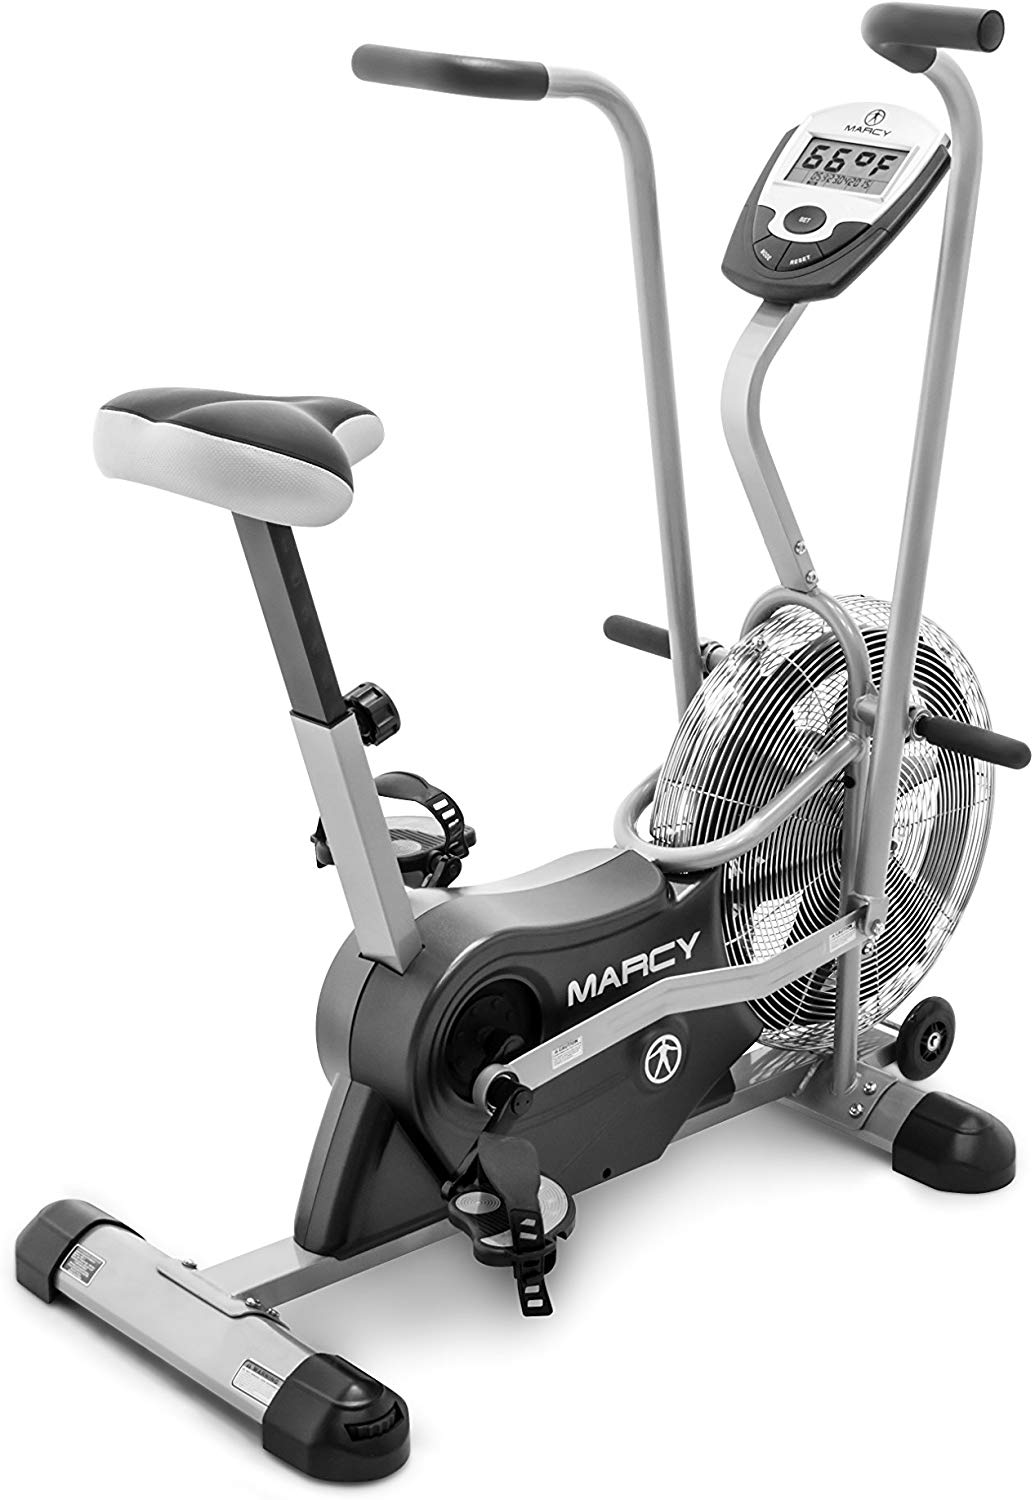 Marcy AIR-1 Upright Exercise Bike